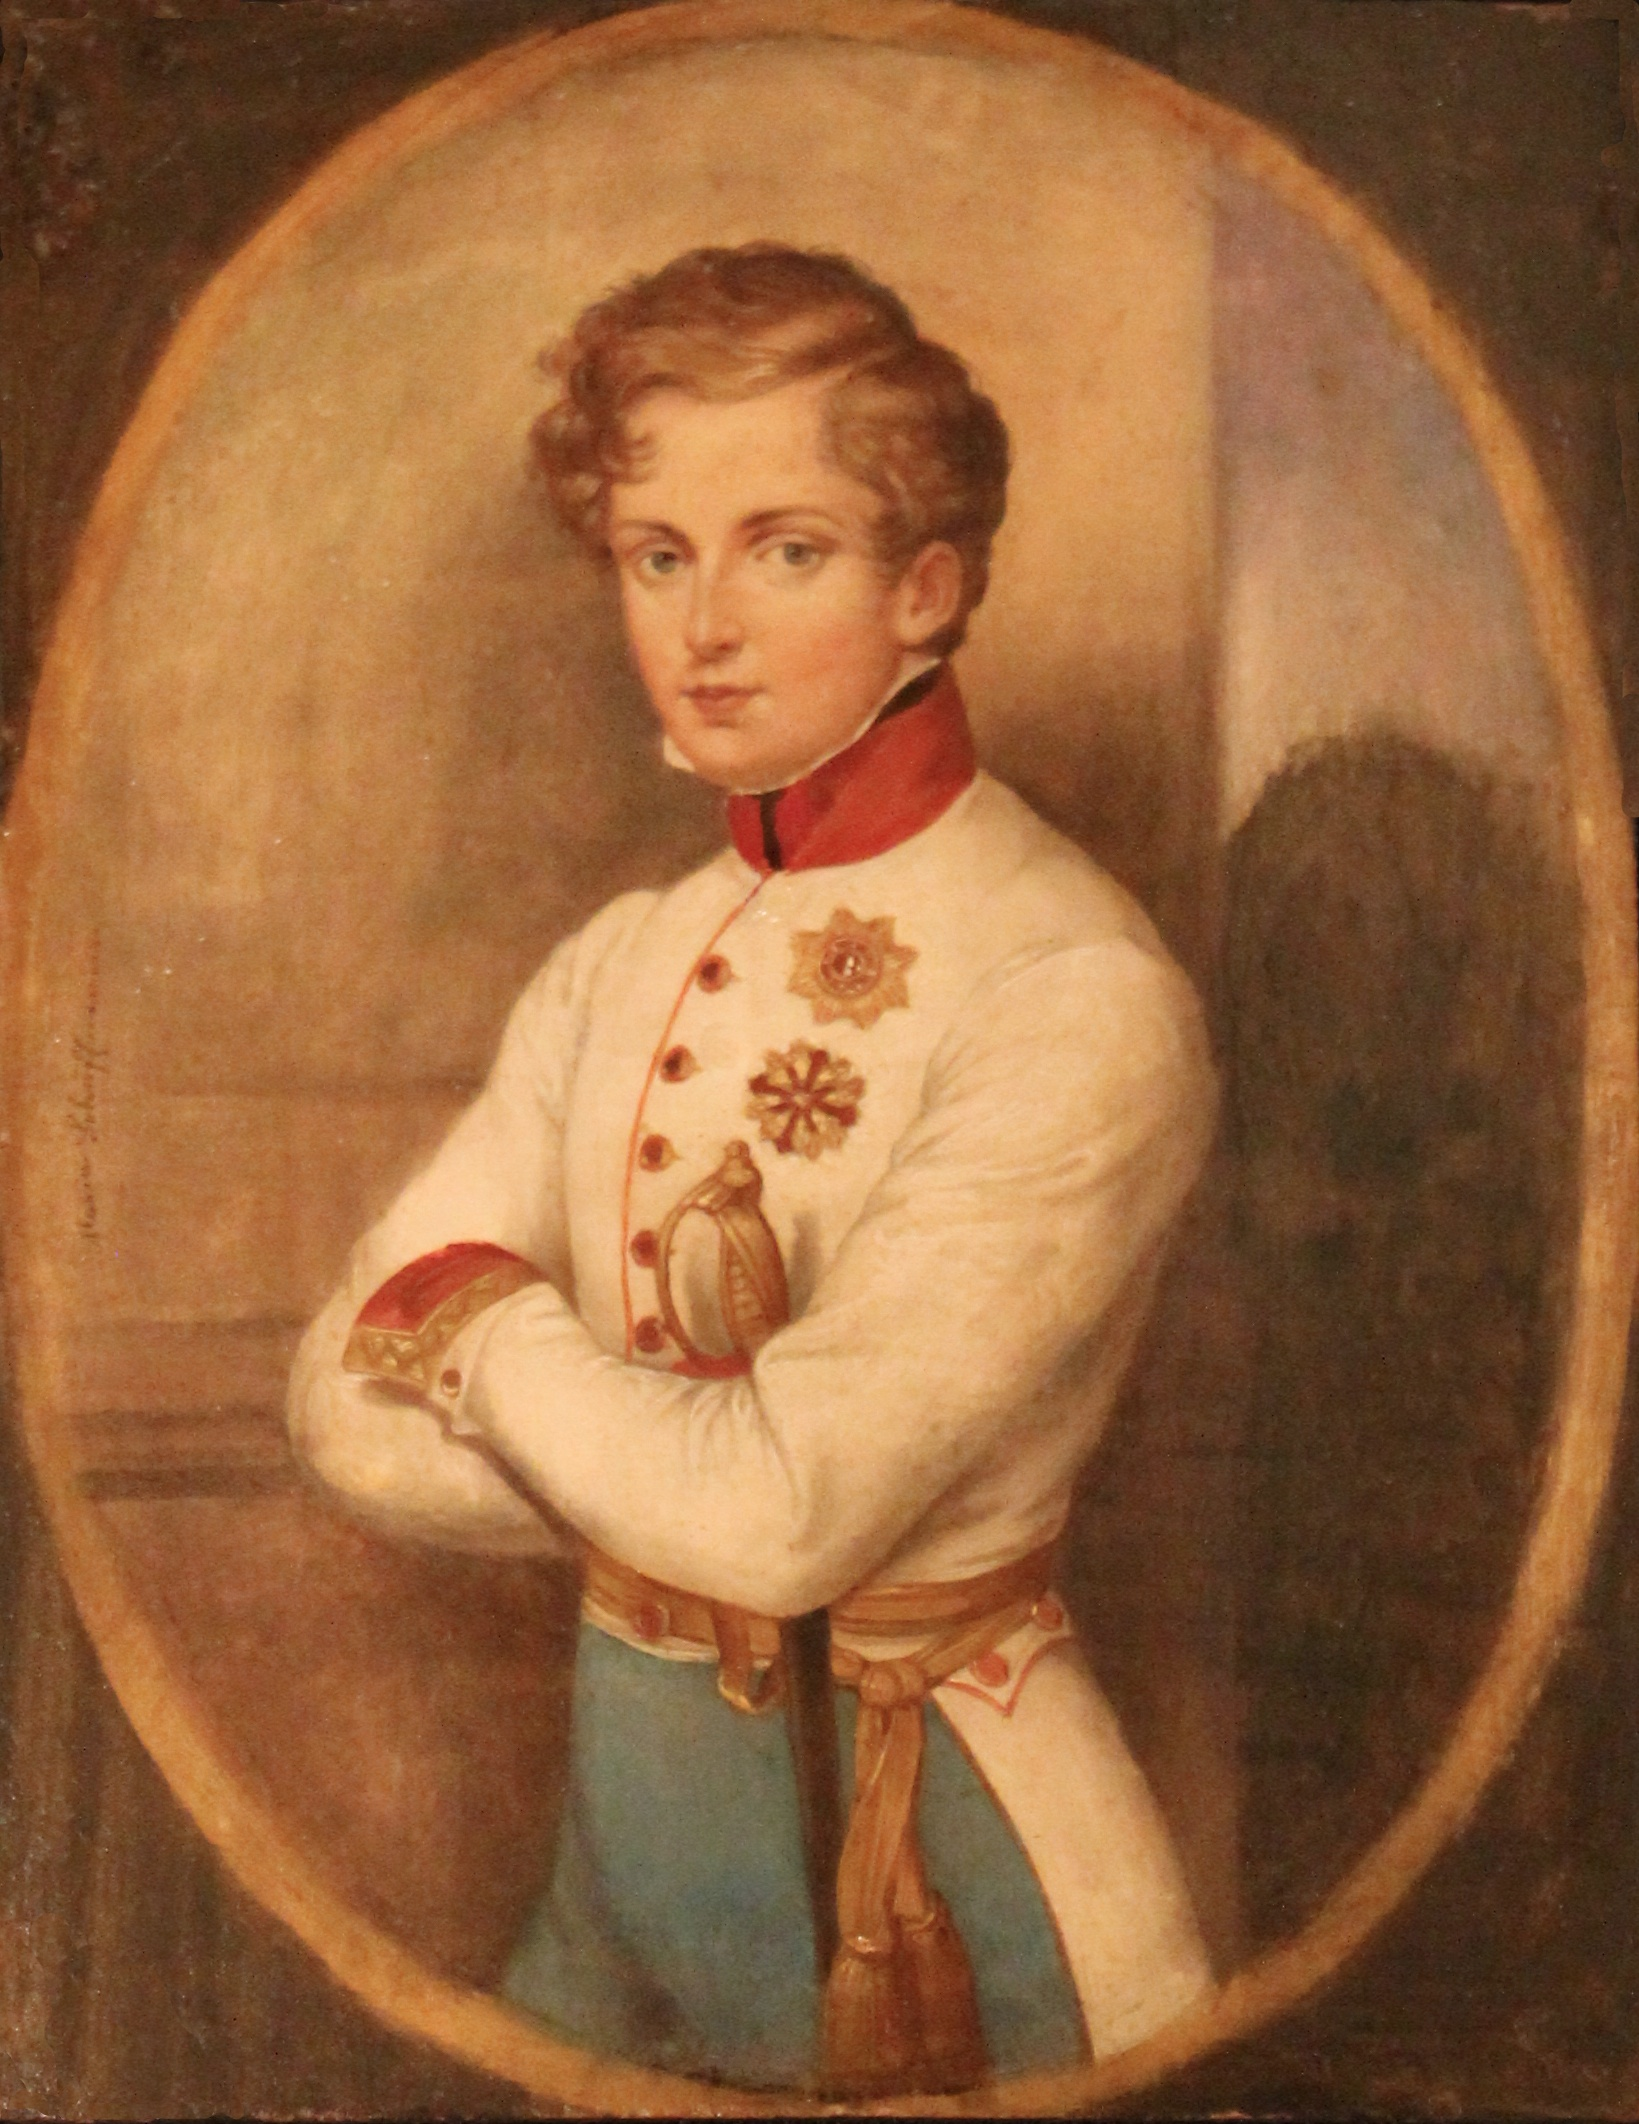 King of Rome Archives - Finding Napoleon Napoleon Bonaparte As A Child